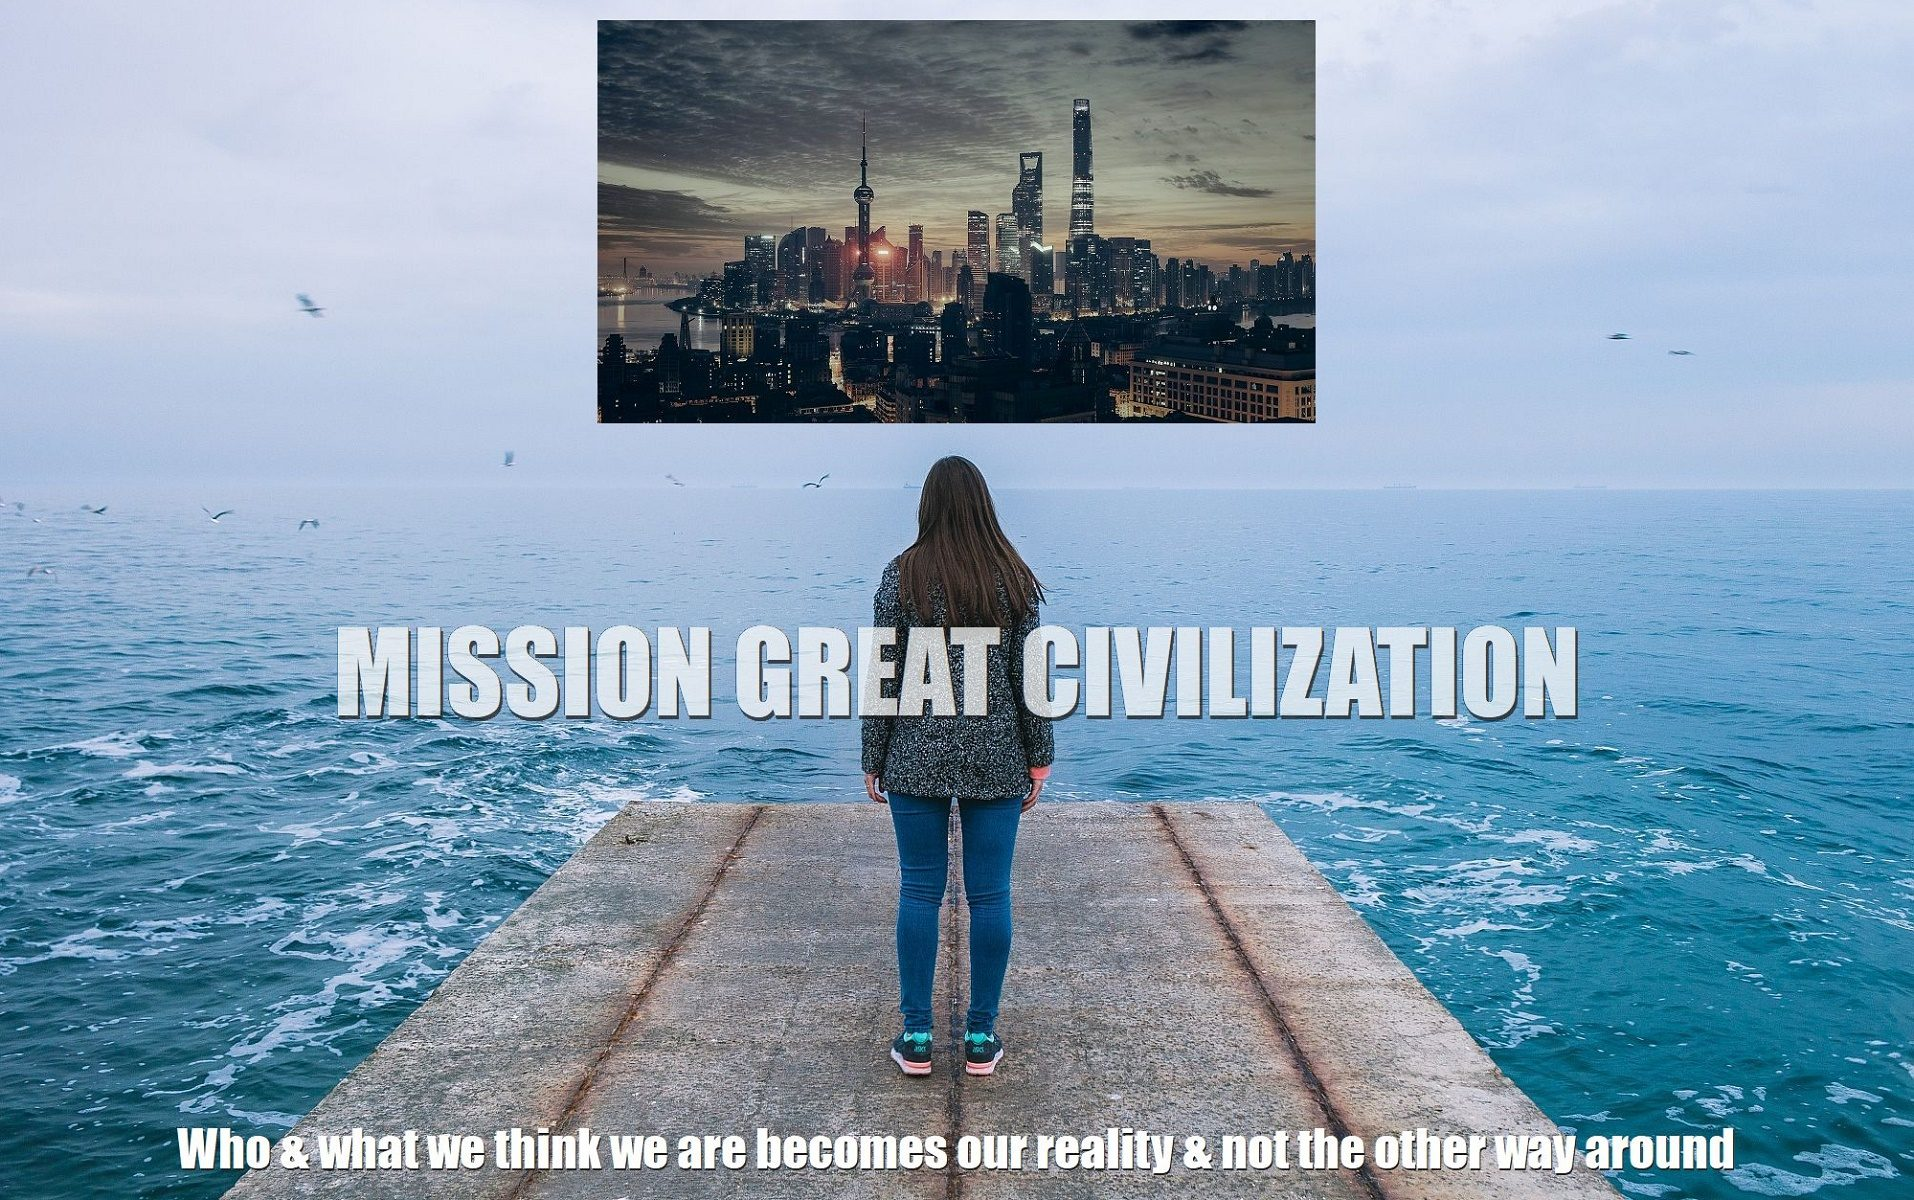 Woman visualizing great-civilization